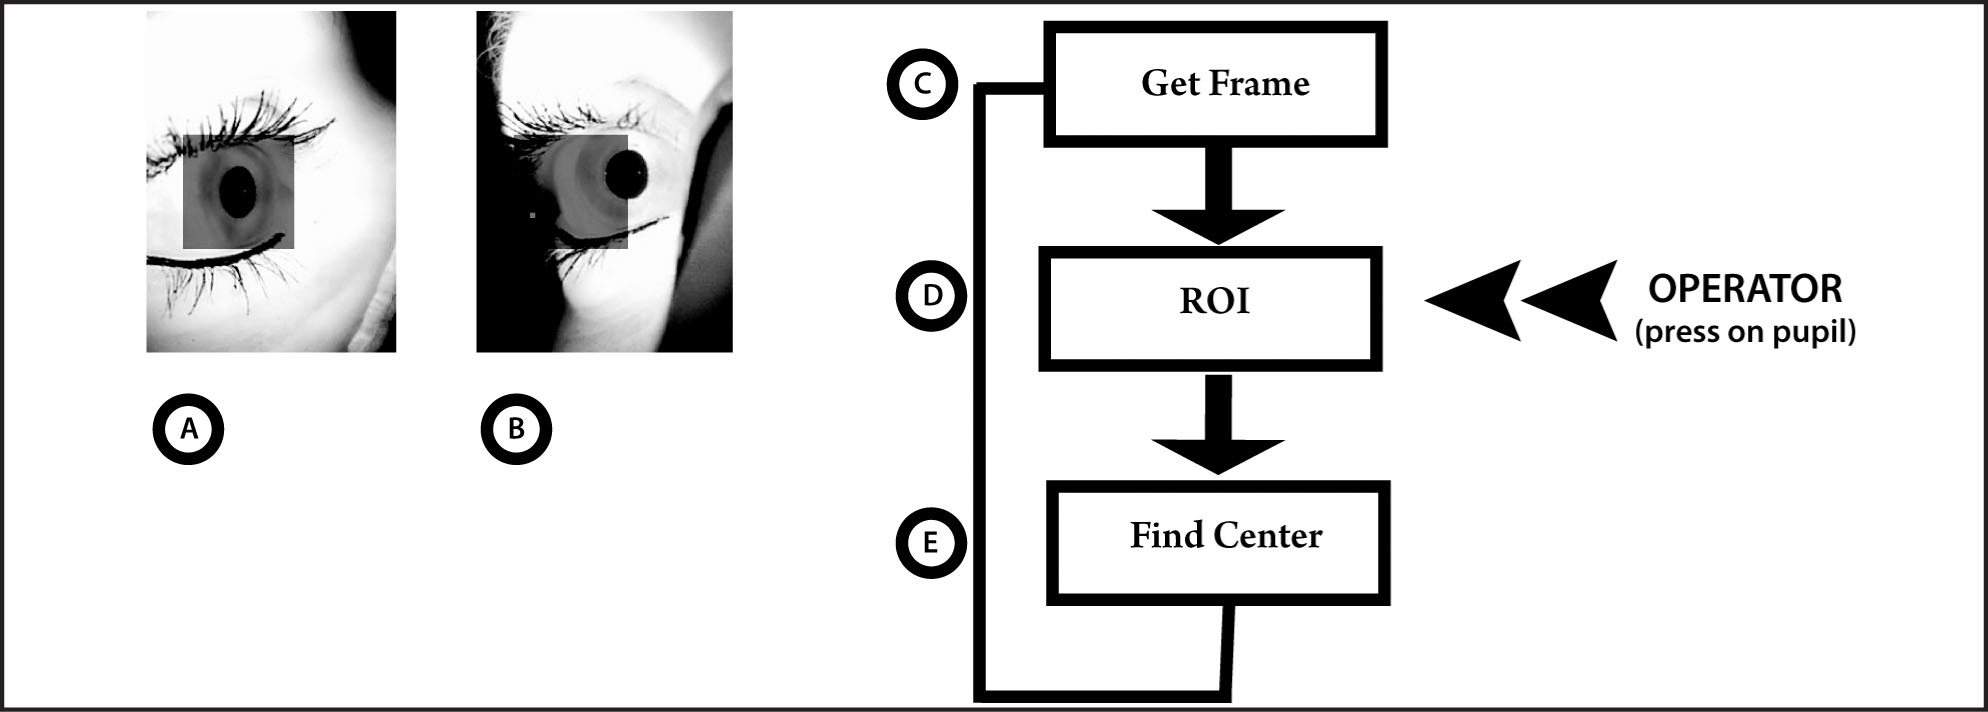 Pupil Center Detection. An Automated Algorithm to Track the Pupil Was Developed on a Matlab (Mathworks, Natick, MA) Platform. Specifically, It Analyzes the Digital Images to Detect the Pupil Center and Moves the Optic System Through the Control of Stepper Motors. The Process Consists of the Following Steps: (C) Images Are Acquired by the Left (A) and Right (B) Webcams, Respectively, and (D) a Region of Interest (ROI) Is Defined. The Operator Confirms or Overwrites the Area to Compute and (E) the ROI Is Analyzed to Find the Pupil Center.